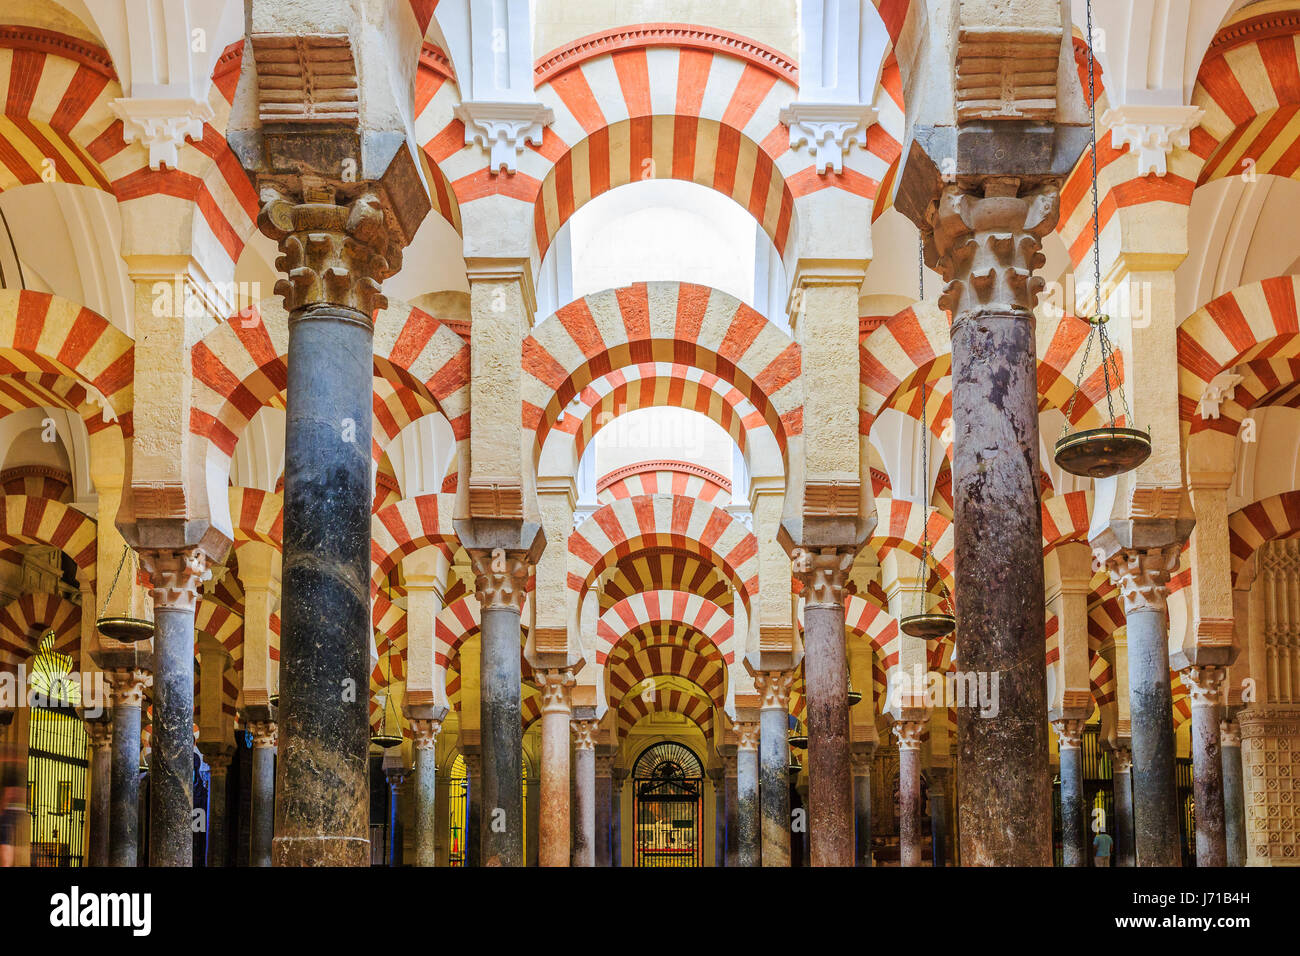 CORDOBA, SPAIN - September 29, 2016: Interior view of La Mezquita Cathedral in Cordoba, Spain. Cathedral built inside - Stock Image